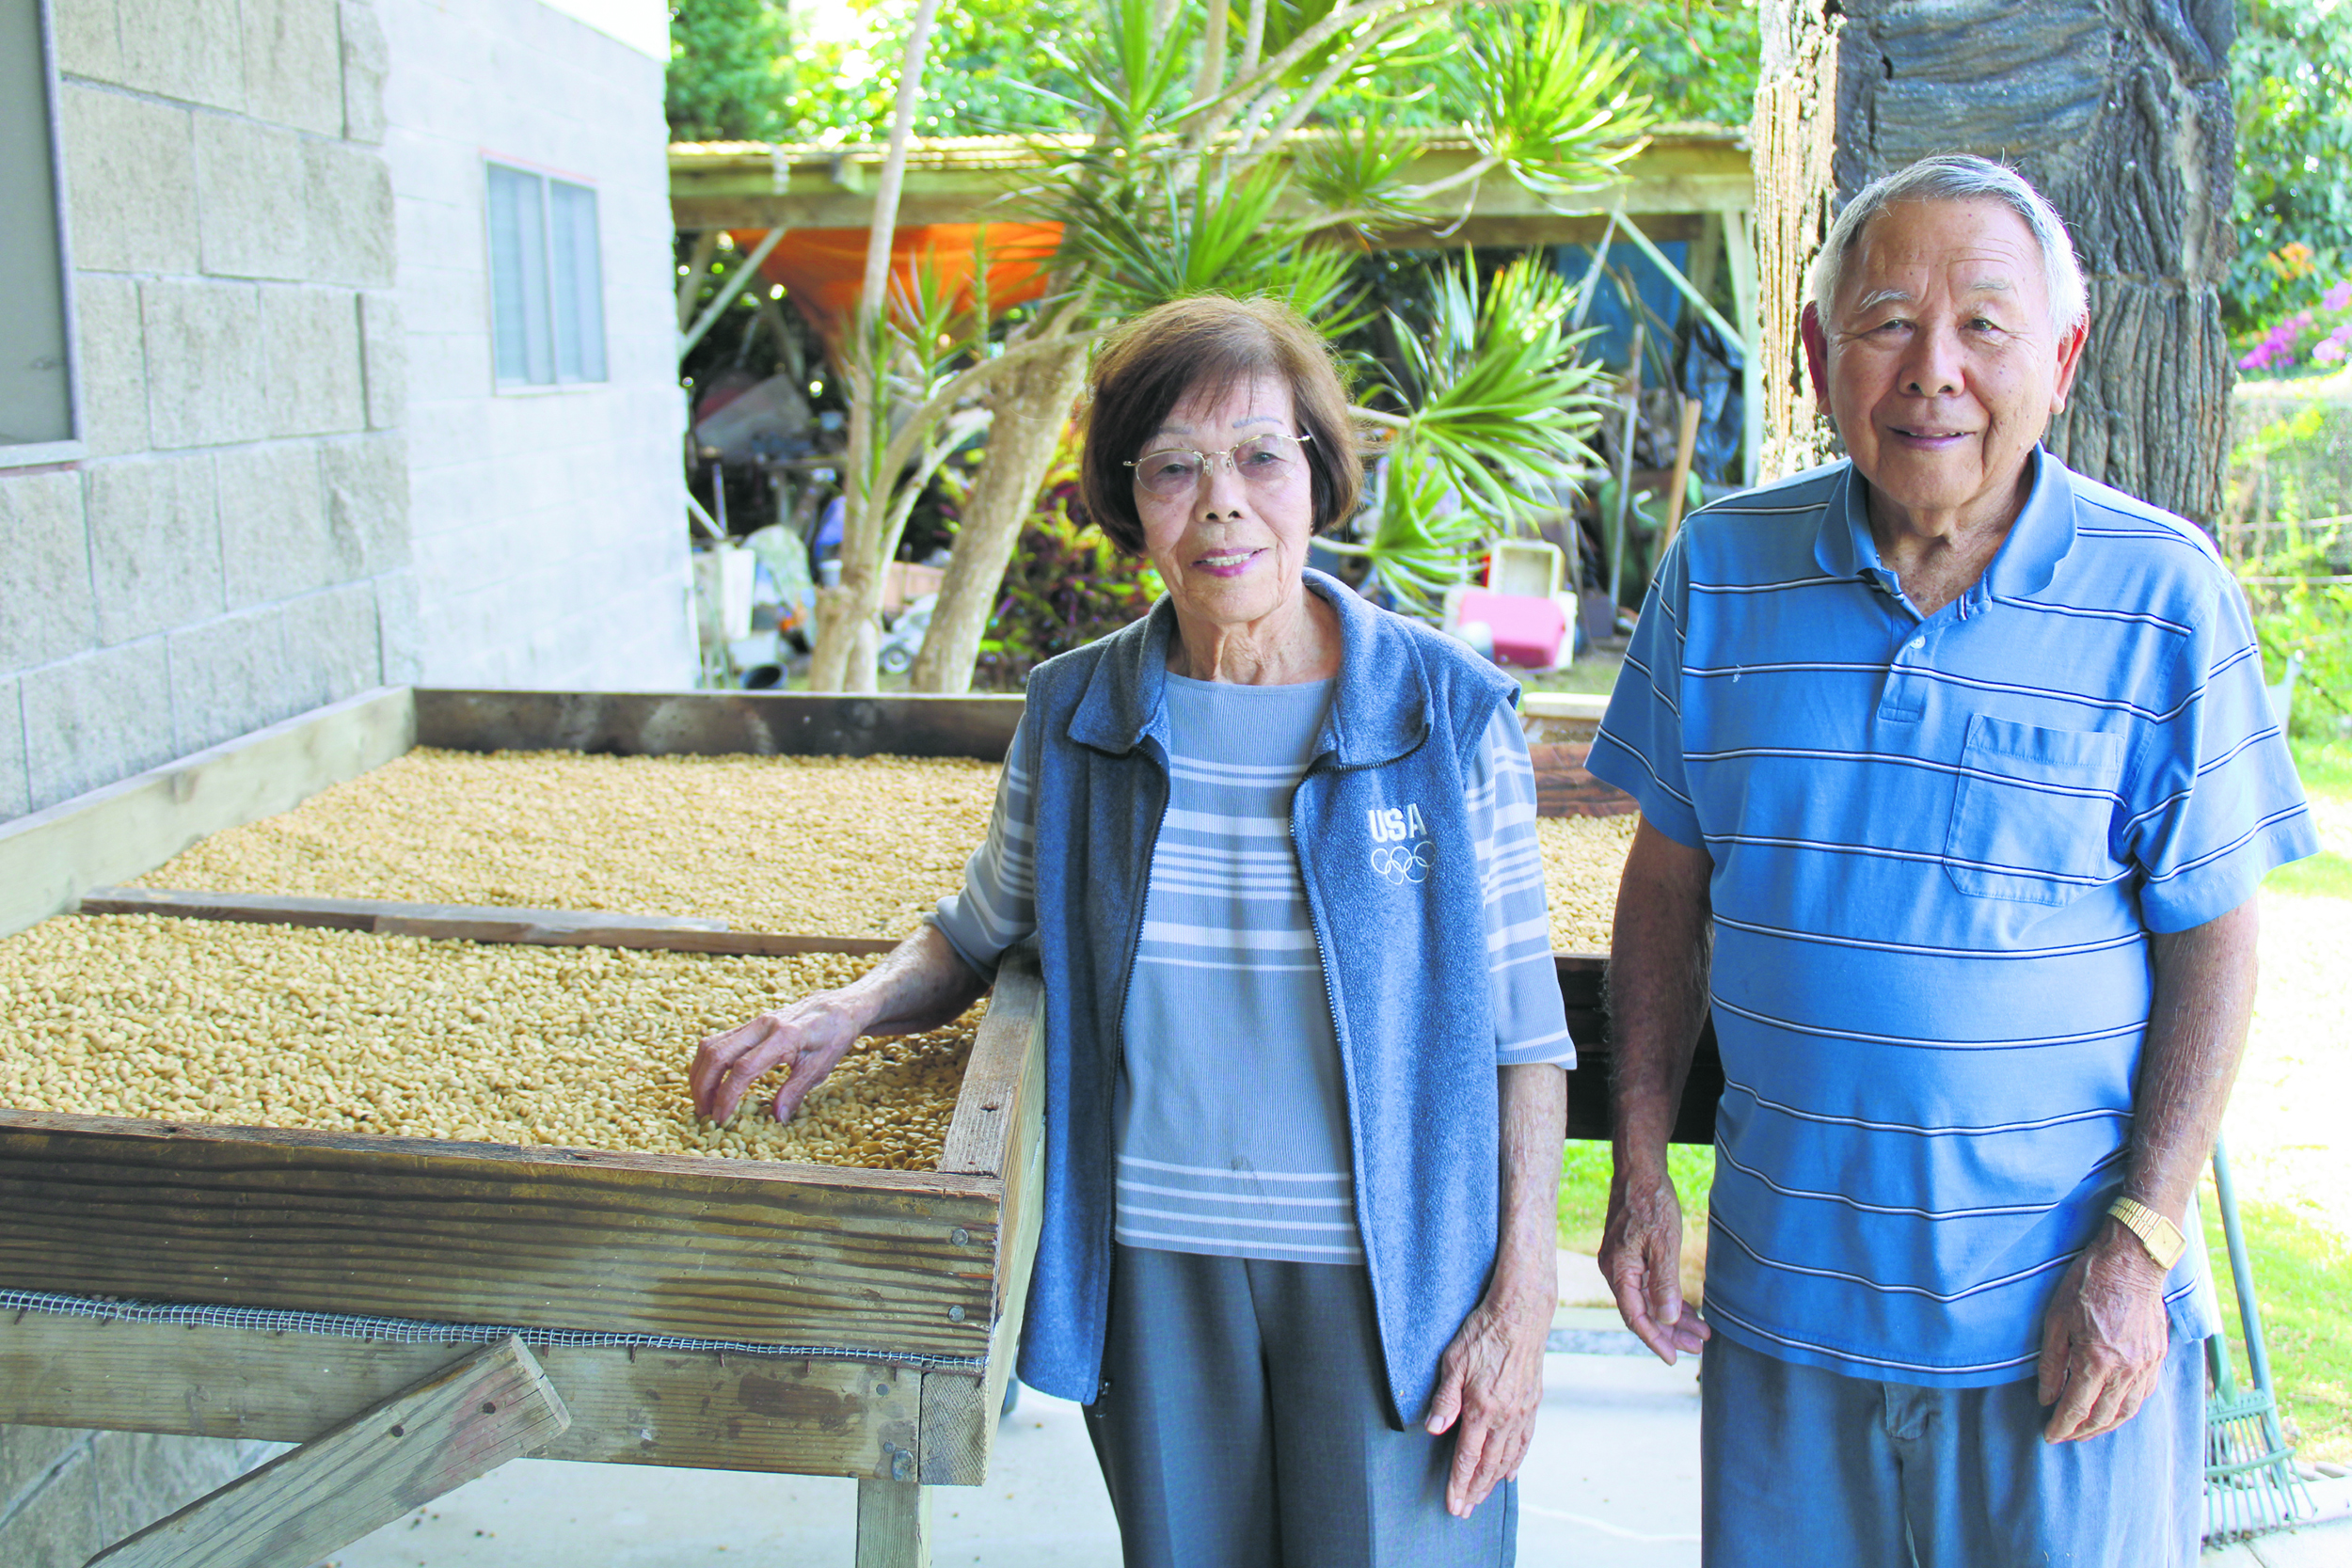 At age 87, Takeo and Shigeko Nakasone remain active, working on their mini farm in Hölualoa in North Kona. They are pictured here checking on the coffee parchment air-drying on the table. (Color photos by Dan Nakasone)